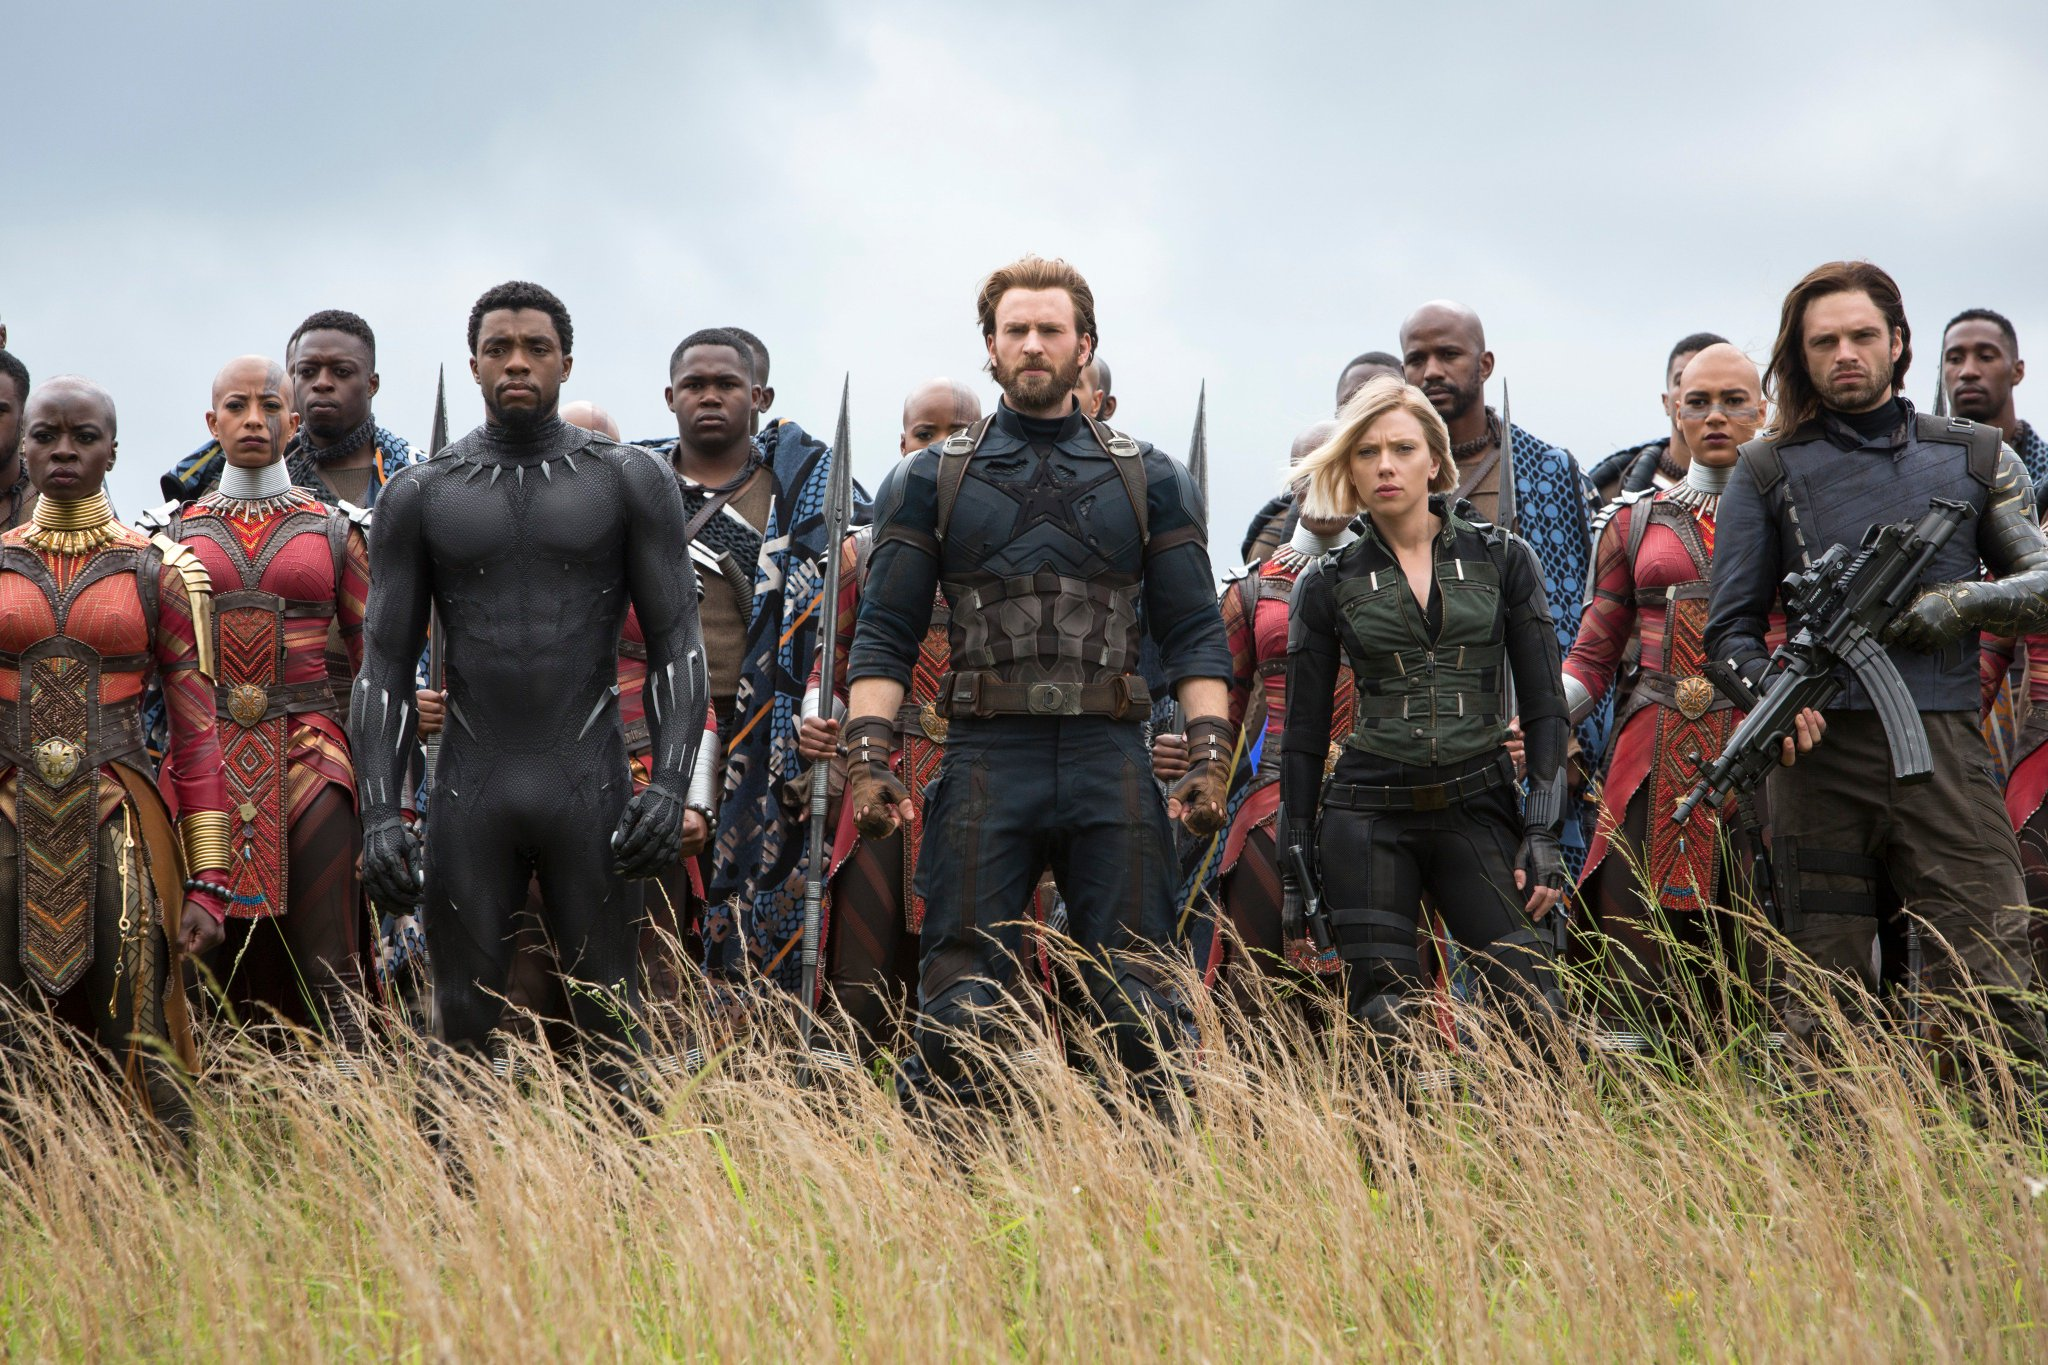 Check out these new images from @Avengers: #InfinityWar. Destiny arrives April 27th. (1/3) https://t.co/zARPXAtpeK